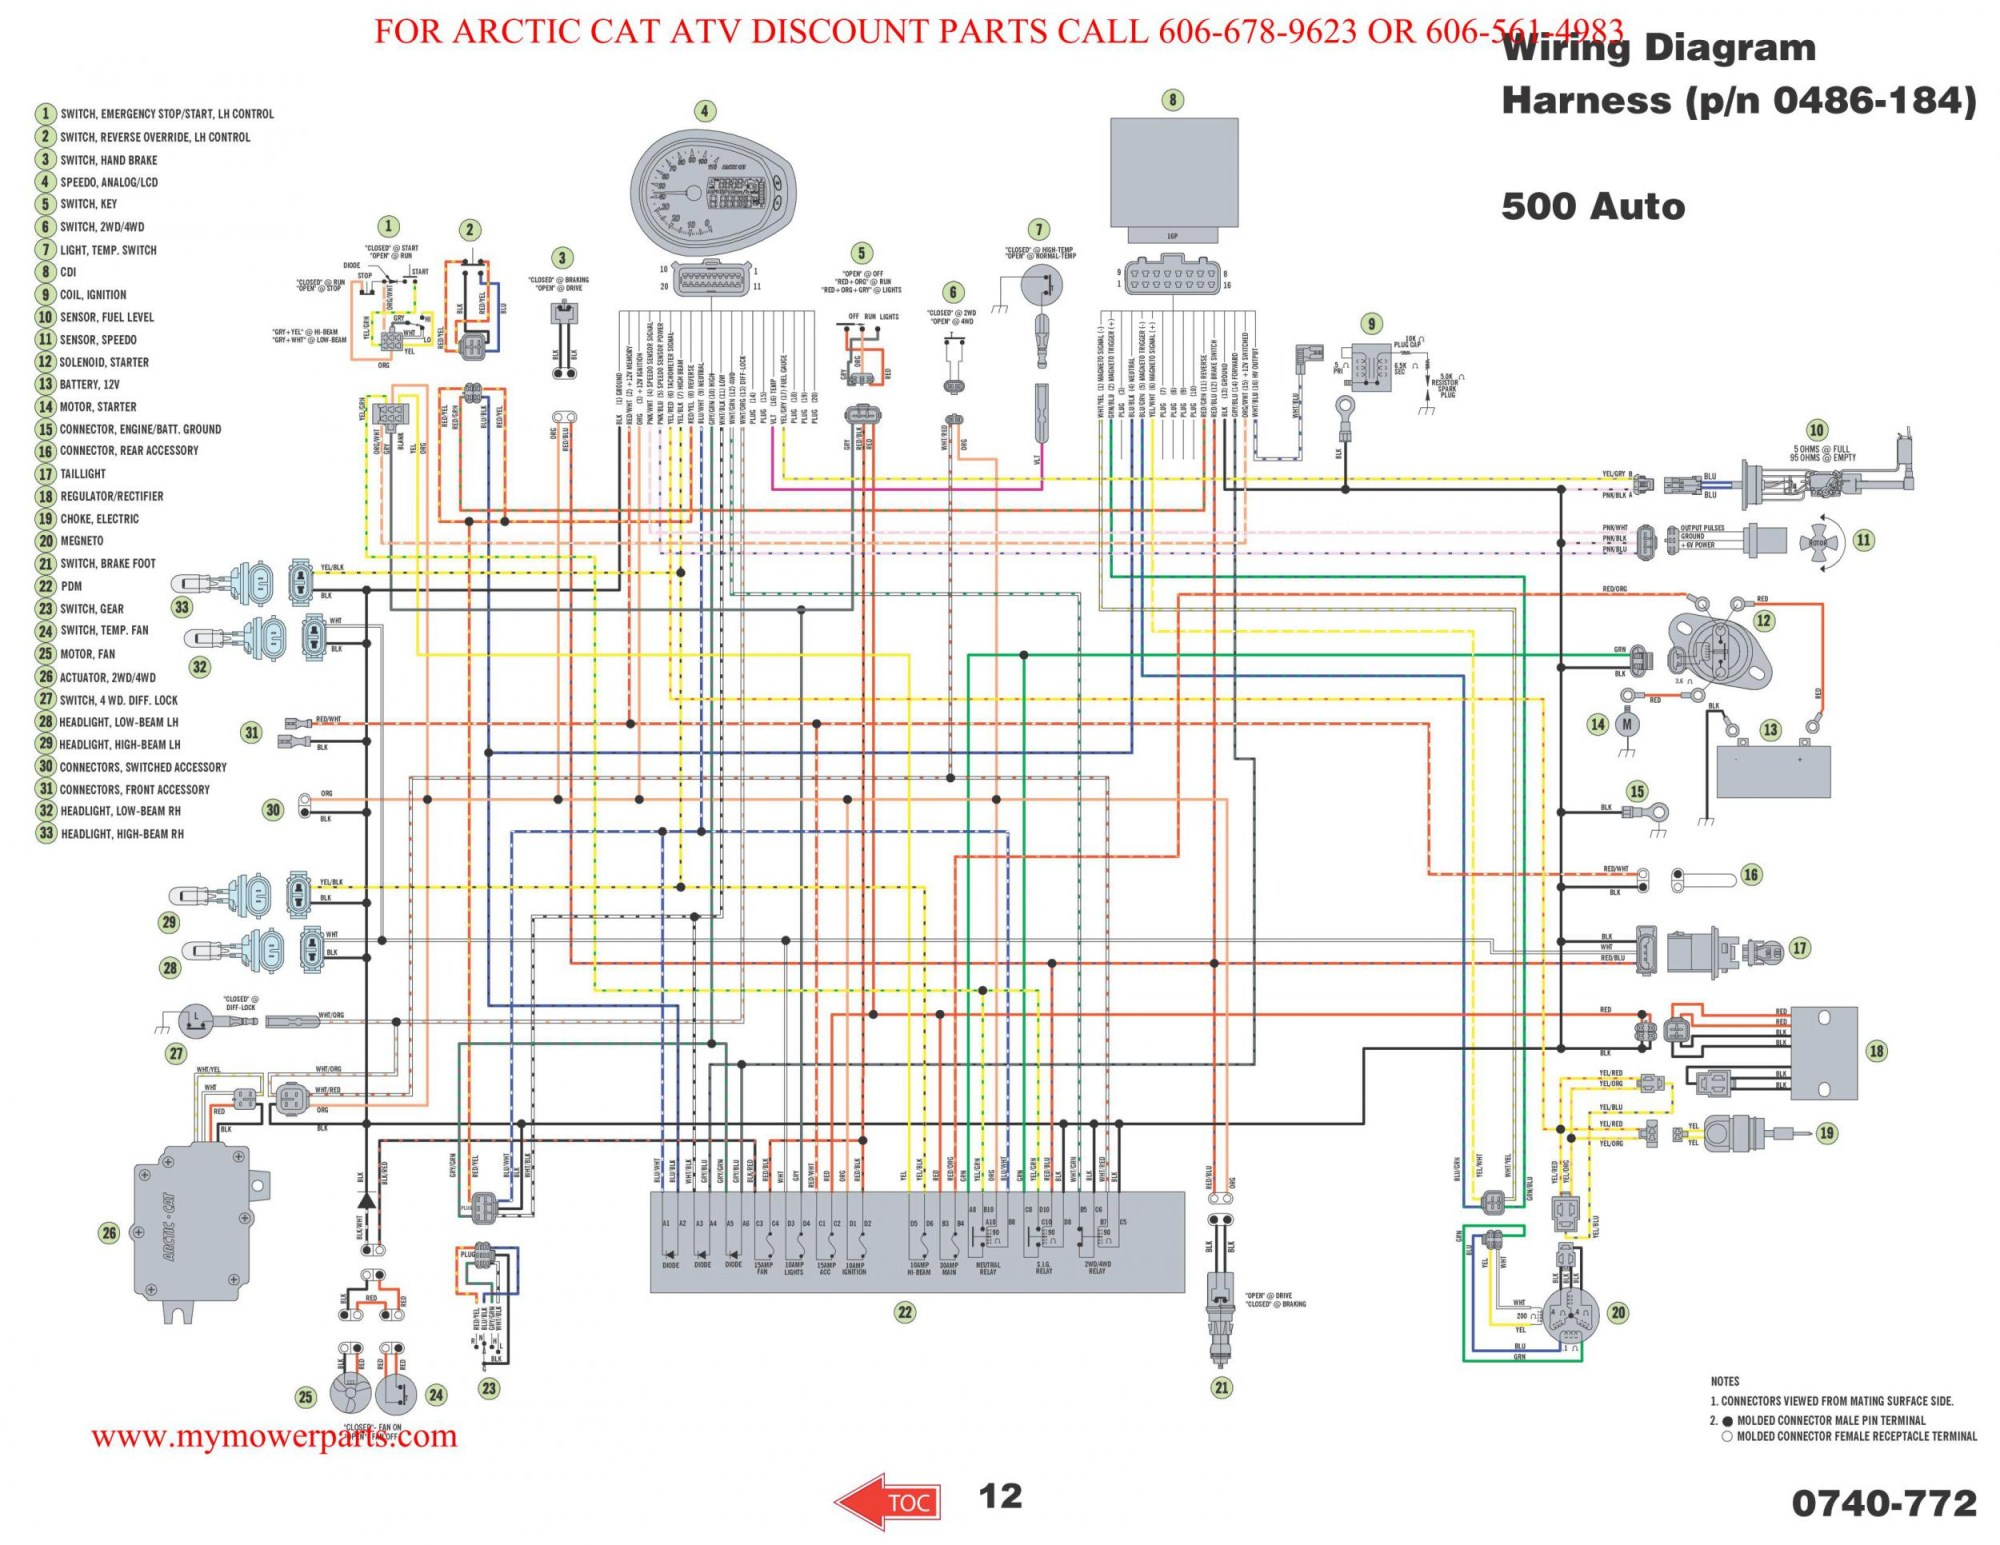 hight resolution of polaris xplorer 400 wiring diagram wiring diagram auto 1995 polaris xplorer wiring diagram 1995 polaris xplorer wiring diagram